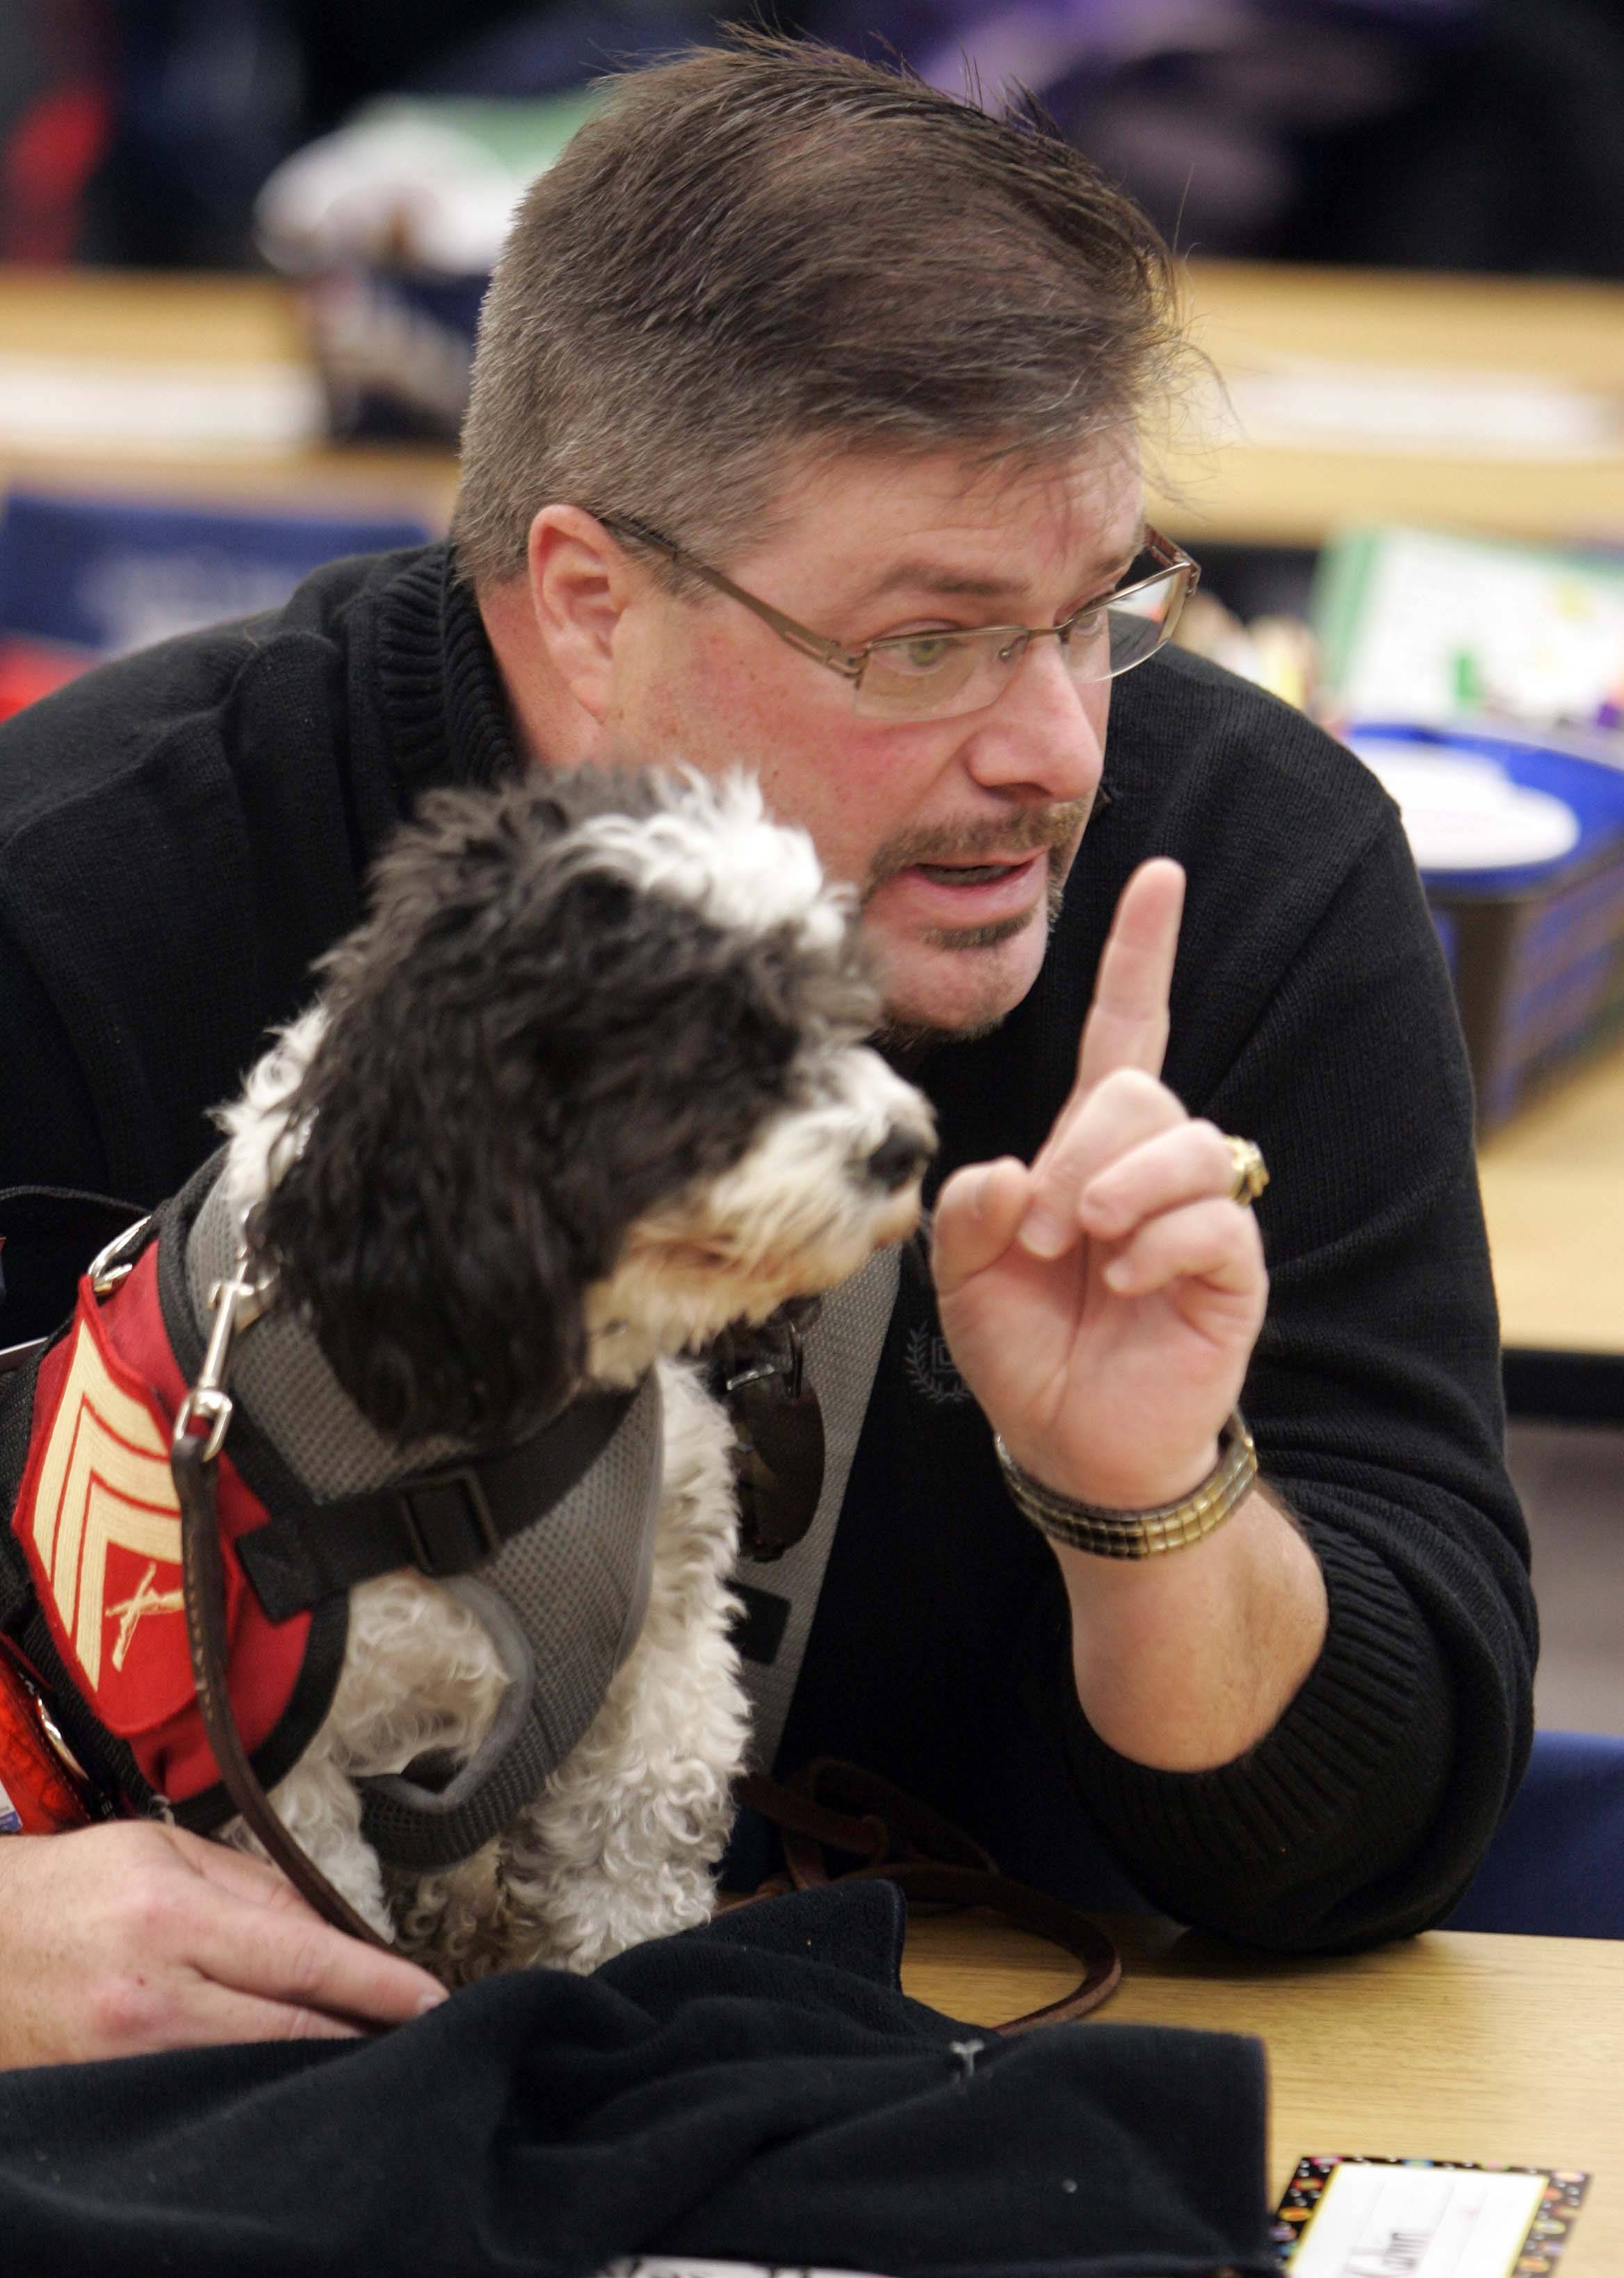 Dan Sauer of Hampshire, talks to Caitlin Berry's kindergarten class at Hampshire Elementary School where he was the class's guest veteran Nov. 10. Sauer, a former sergeant in the Marines, has PTSD and has been working with Chloe, a 17-pound service dog who once almost ended up on a shelter's kill list.